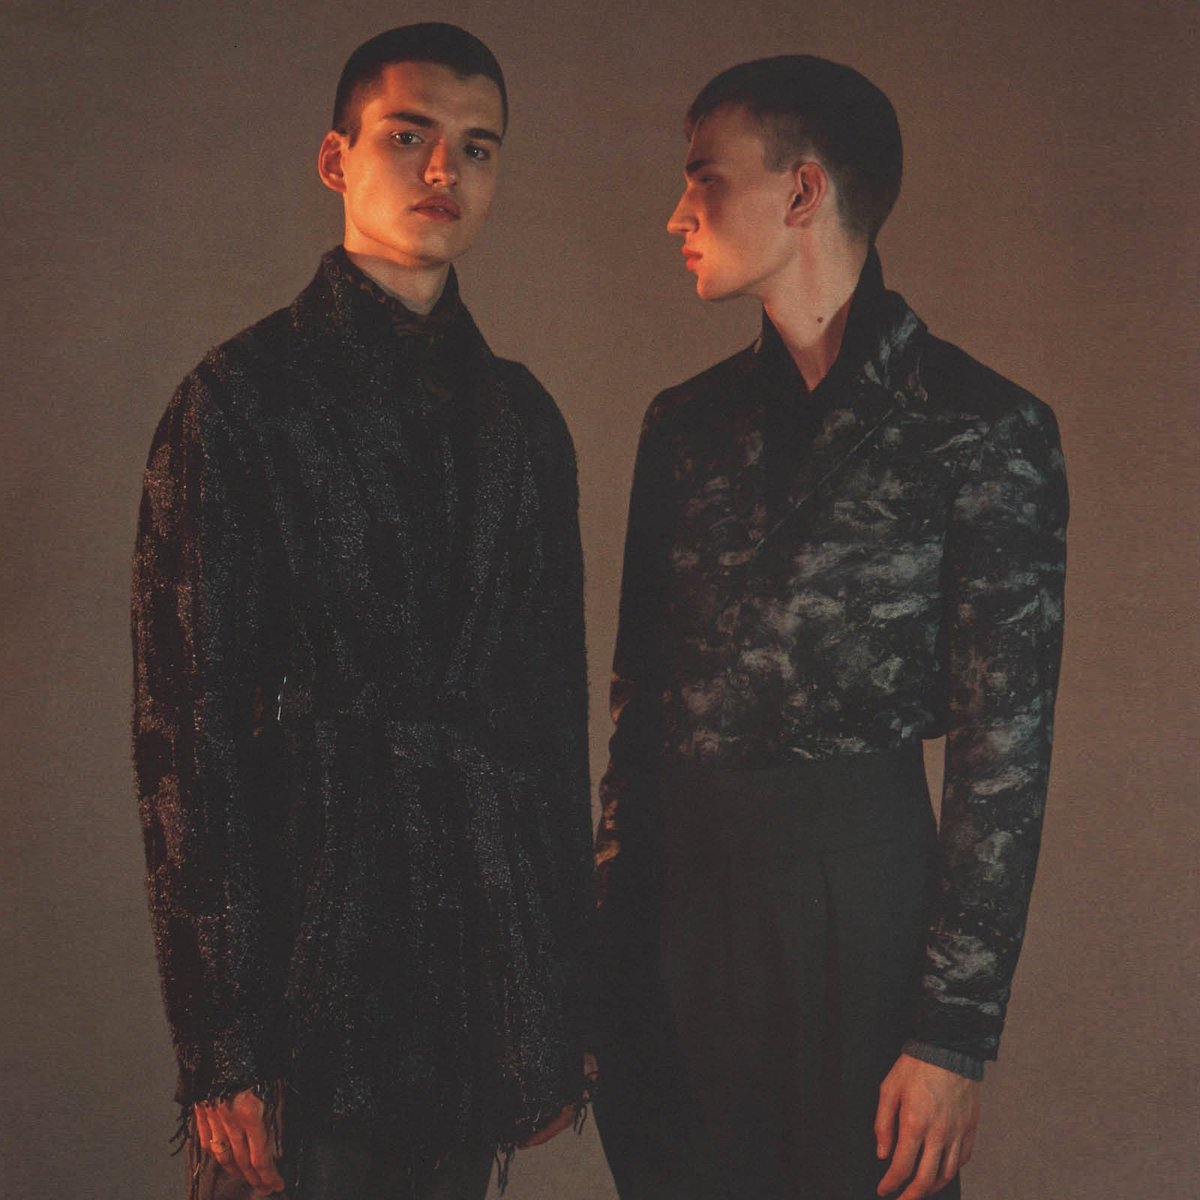 Jackson Wrapped Jacket (left) From Our Autumn - Winter 2016 Collection Featured In The Last Issue Of The Greatest. https://t.co/a9foD1Q3gY